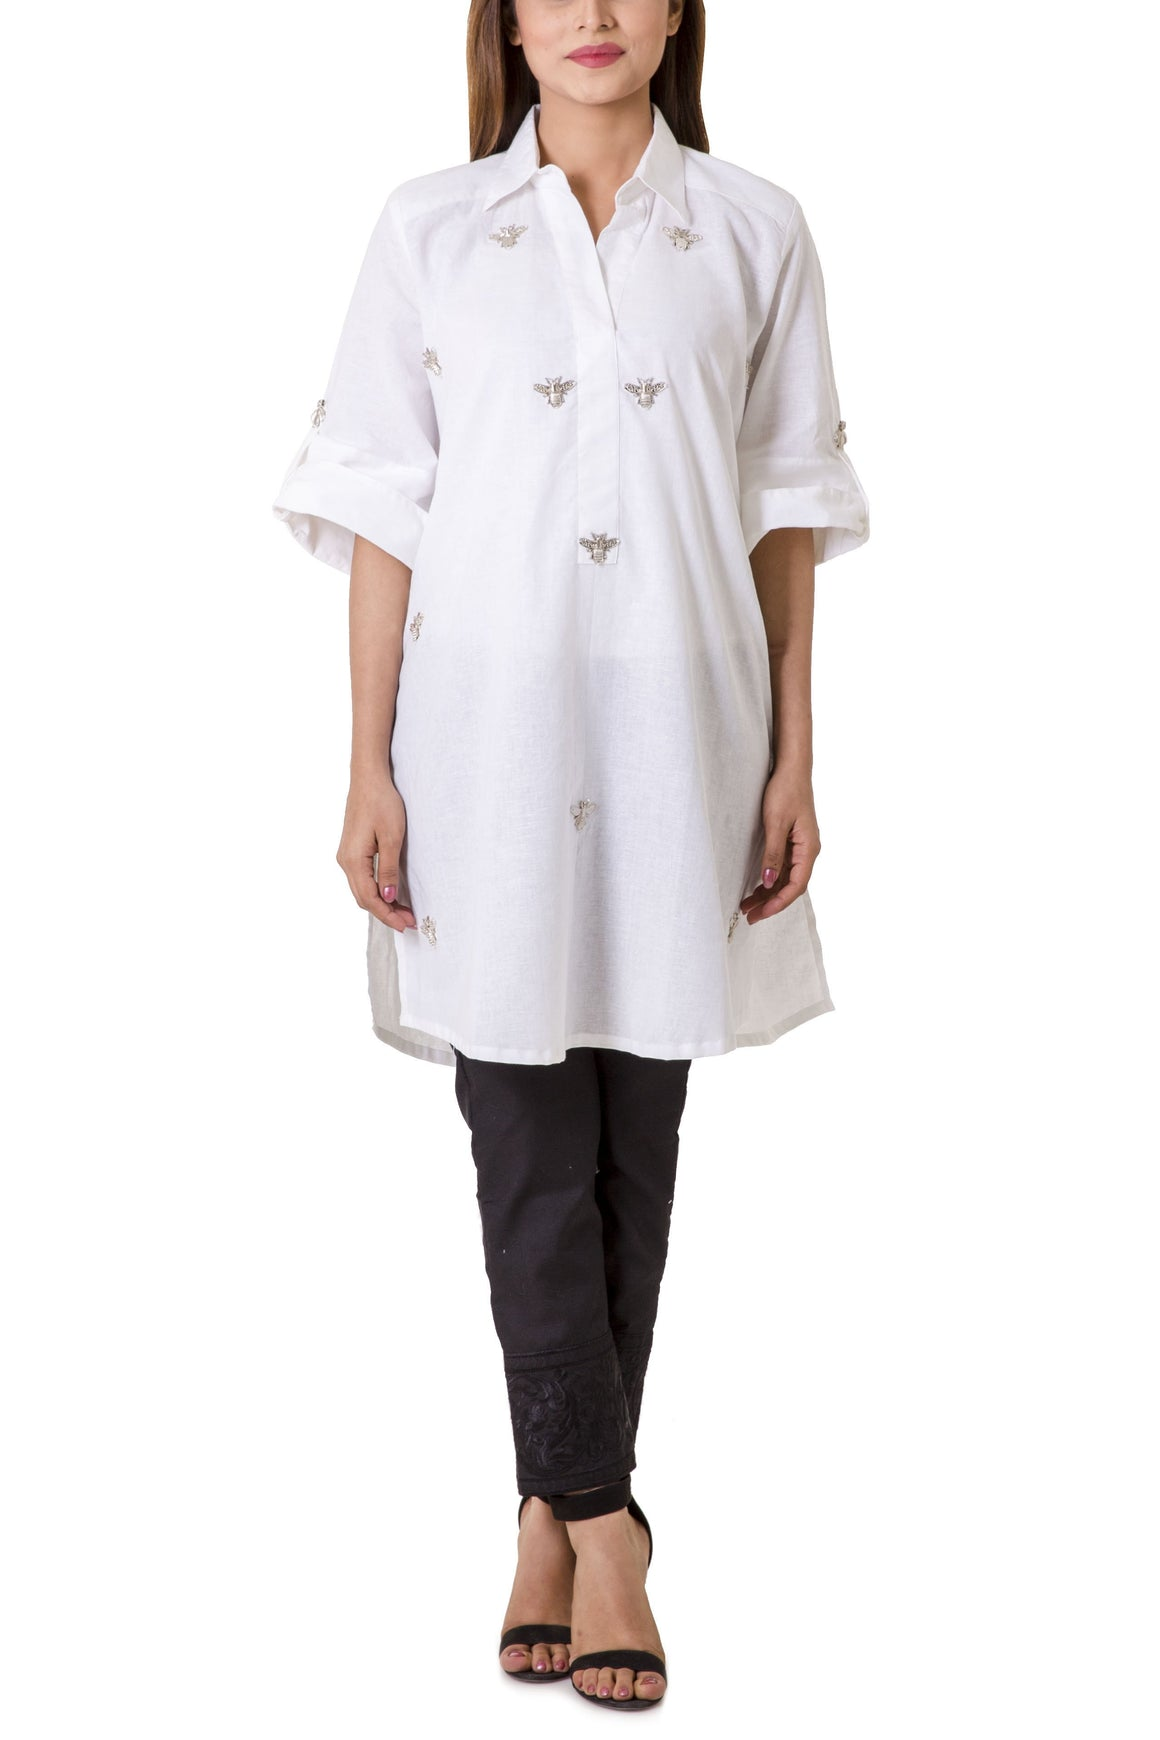 Mehreen Noorani - White Knight White Cotton Collared Tunic